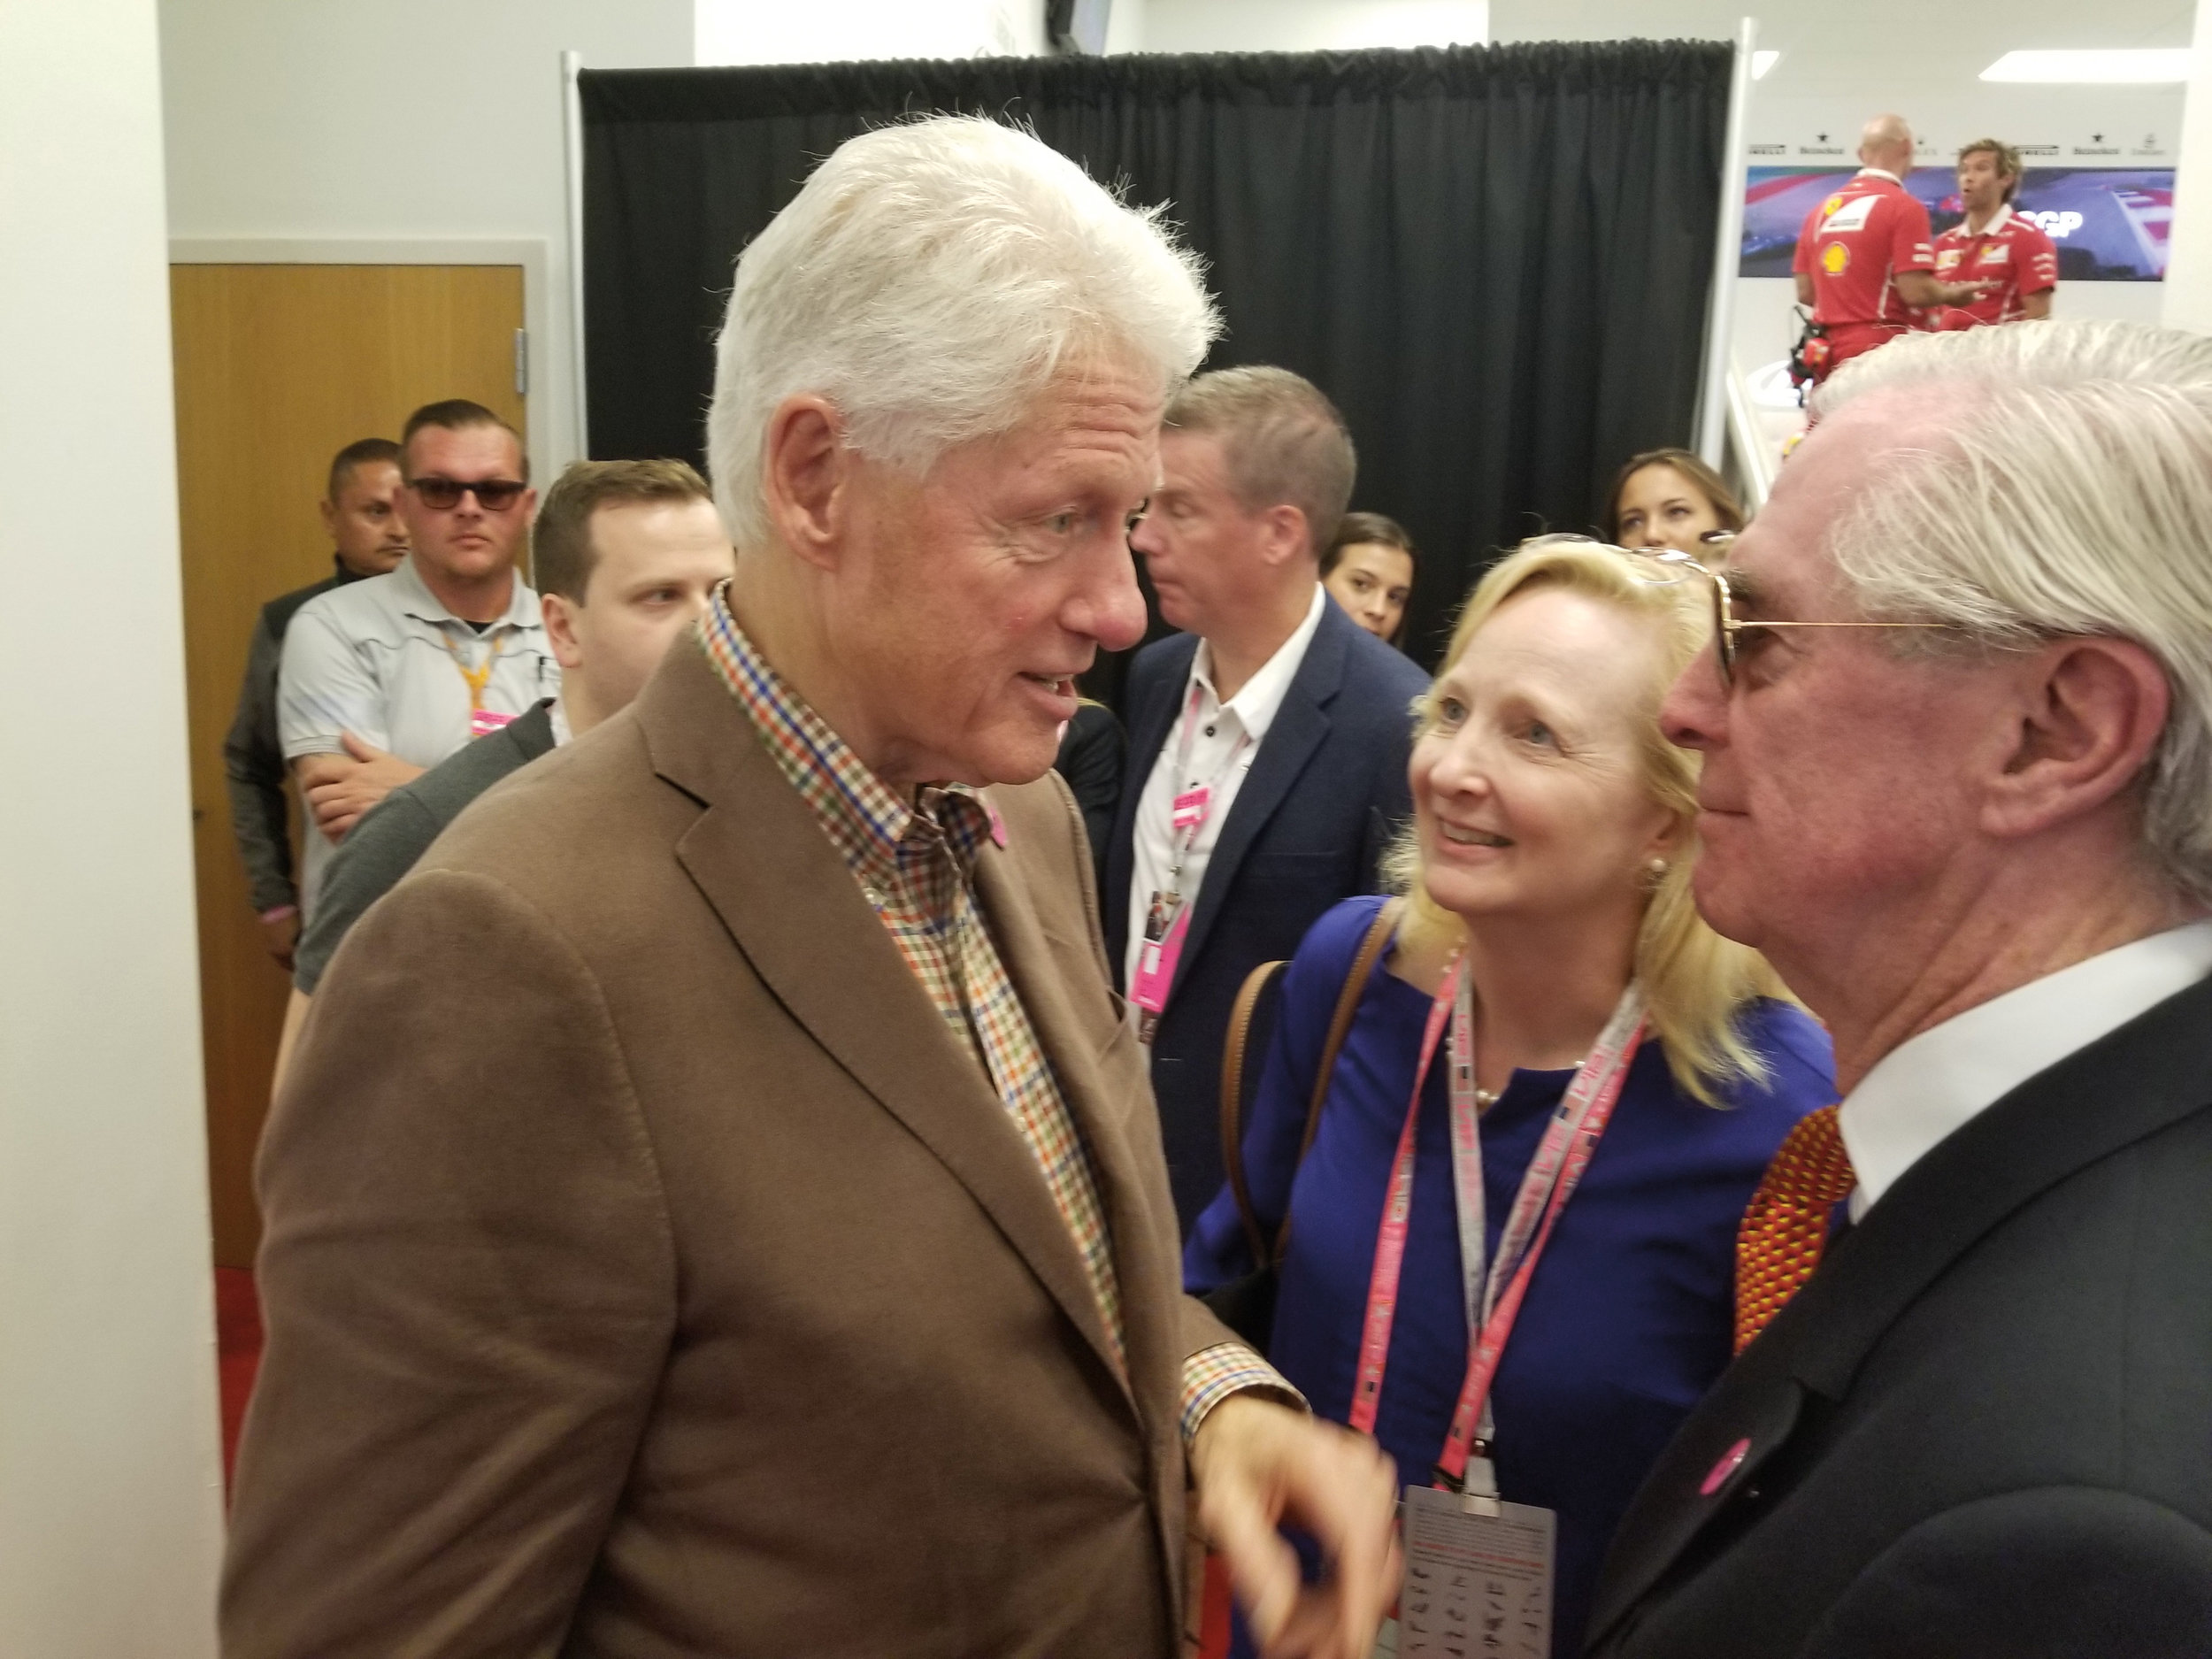 Nick Craw '55 with Bill Clinton at the trophy presentation for a Formula 1 racing event in Texas.